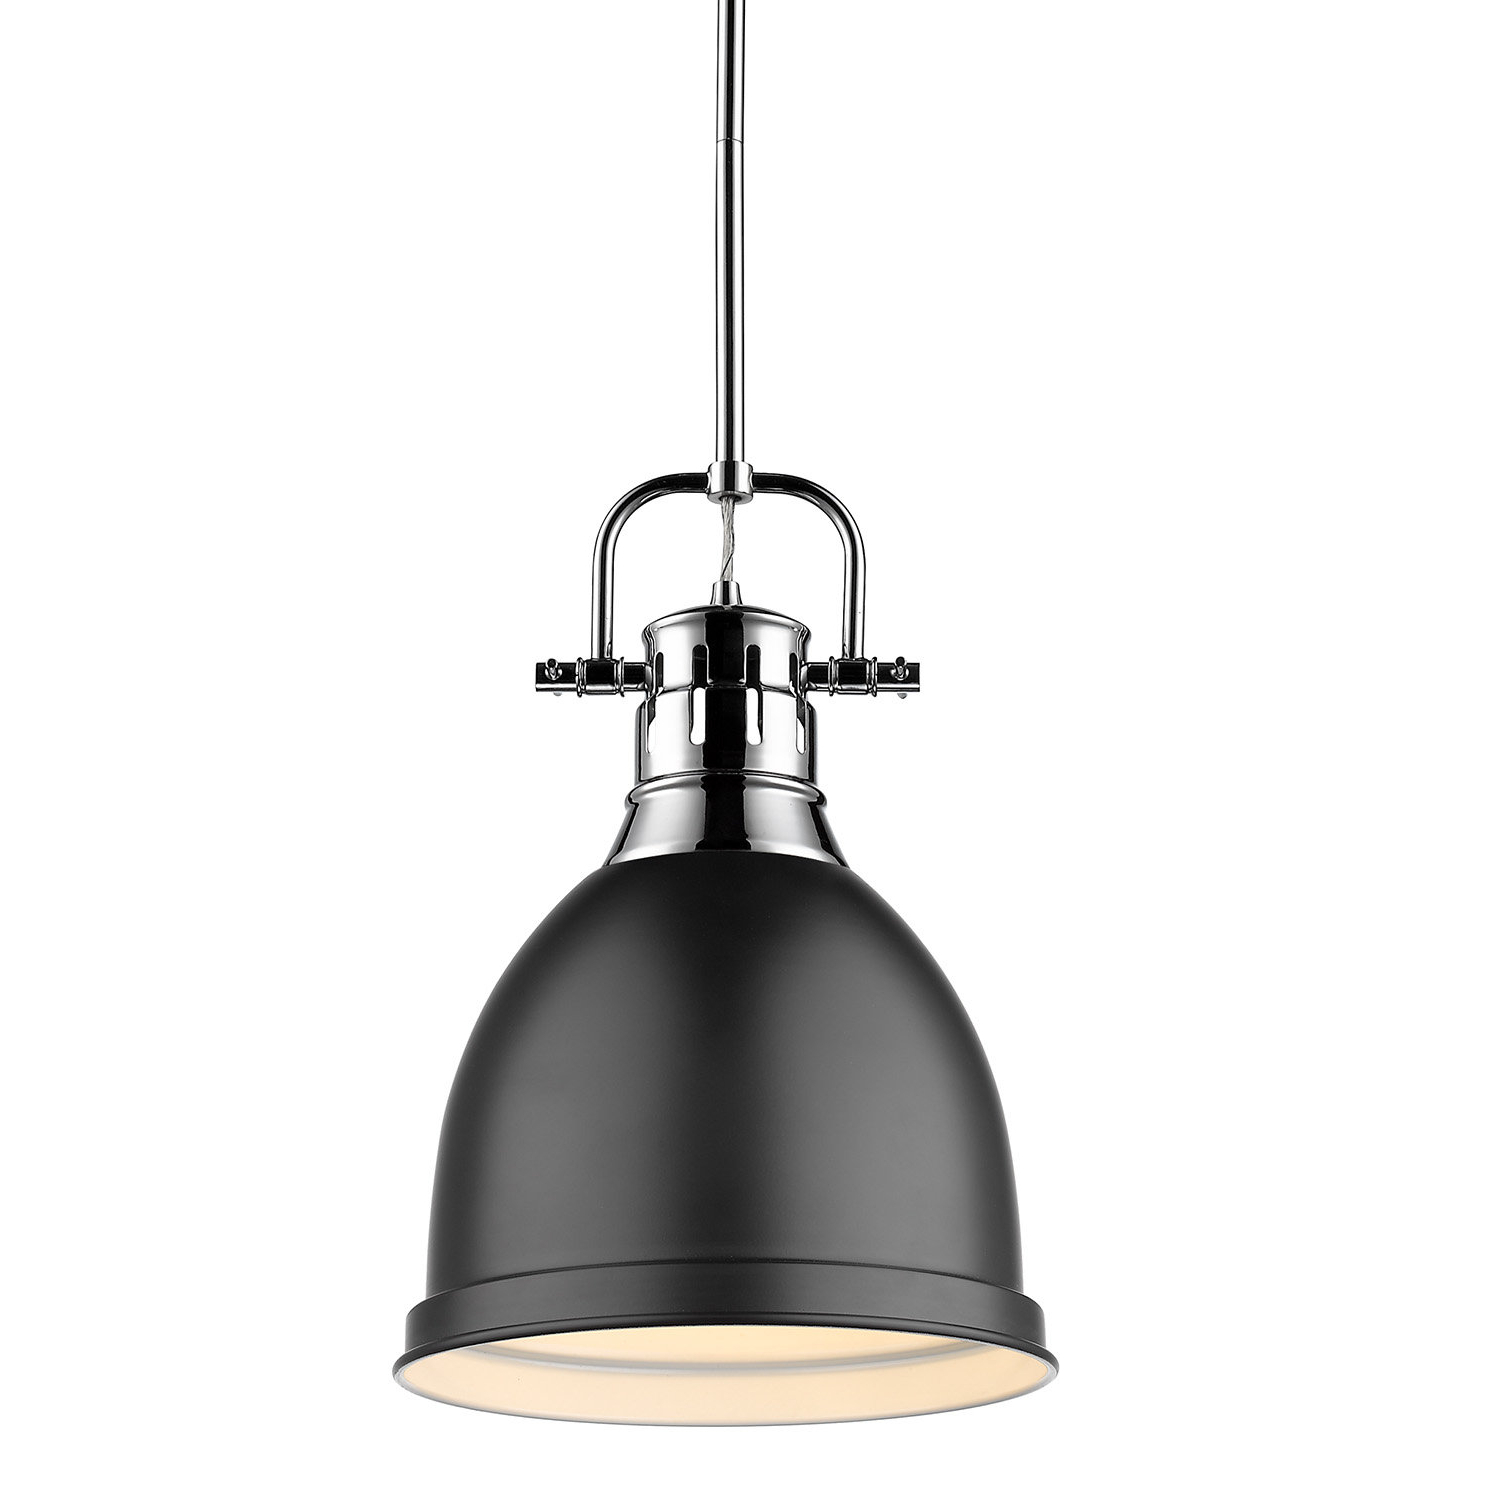 Bodalla 1 Light Single Bell Pendant In Best And Newest Bodalla 1 Light Single Bell Pendants (View 6 of 20)